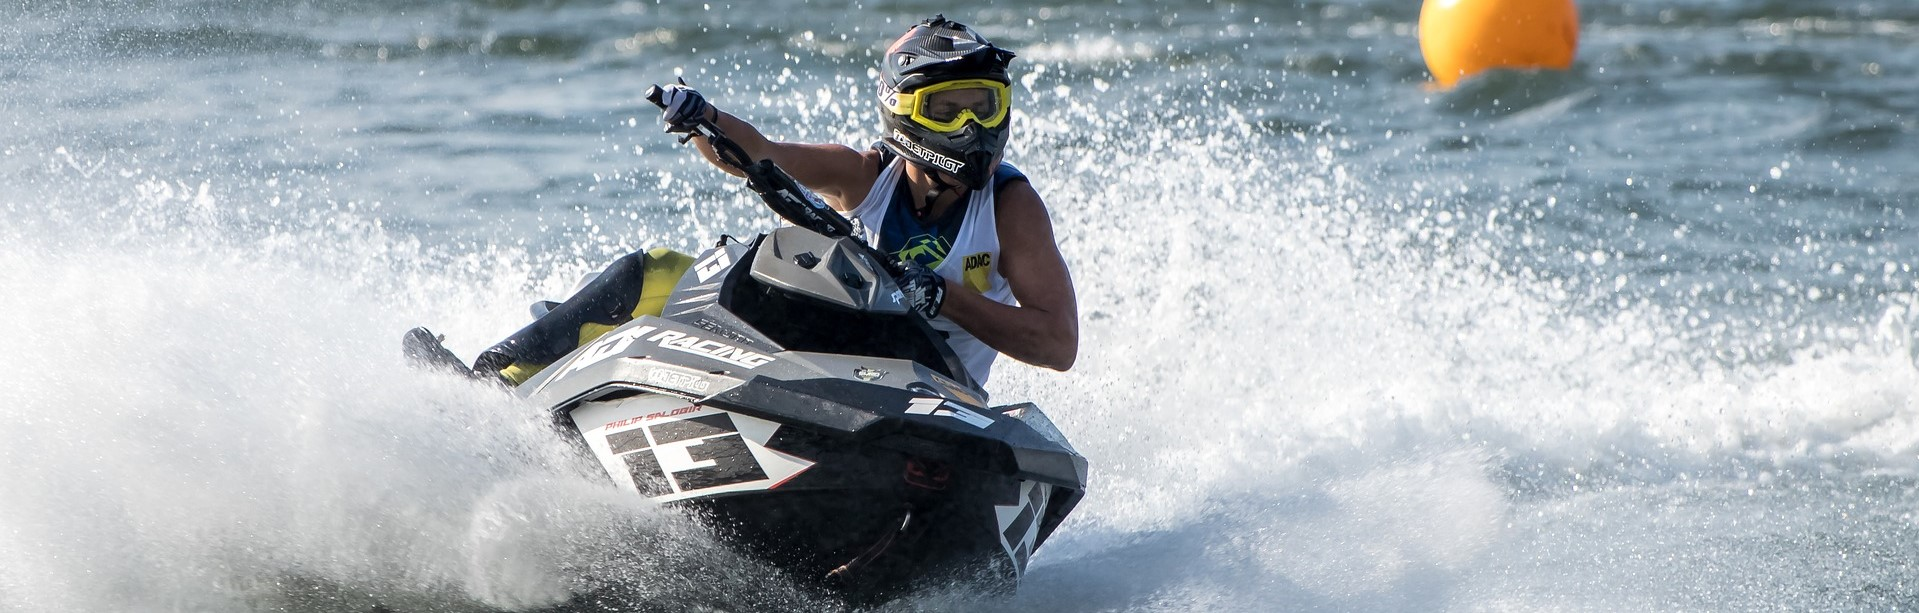 Jet Ski Ride in Yuma, Arizona | Breast Cancer Car Donations